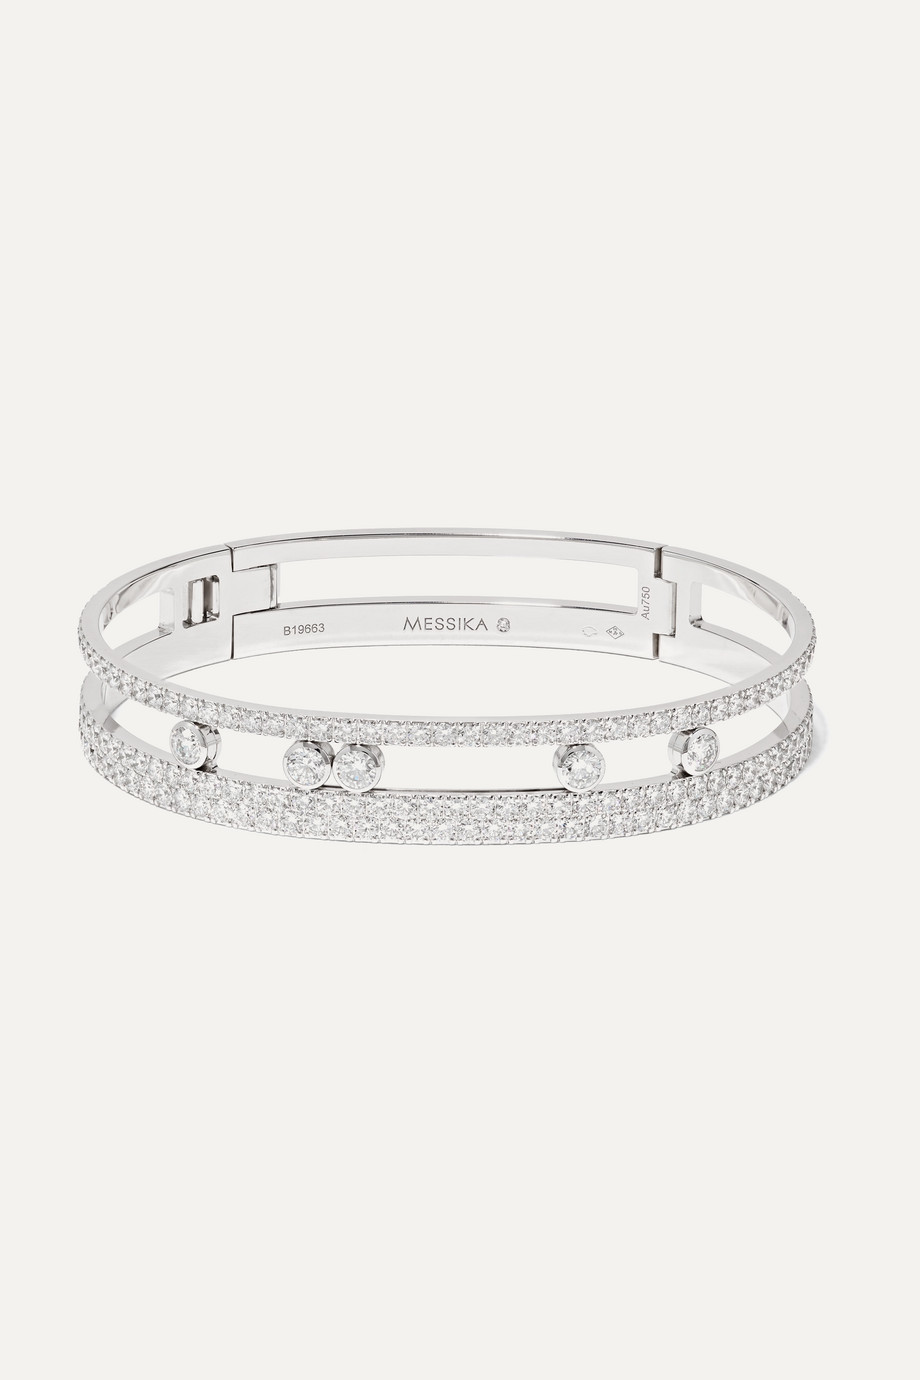 MESSIKA Move Romane 18-karat white gold diamond bangle